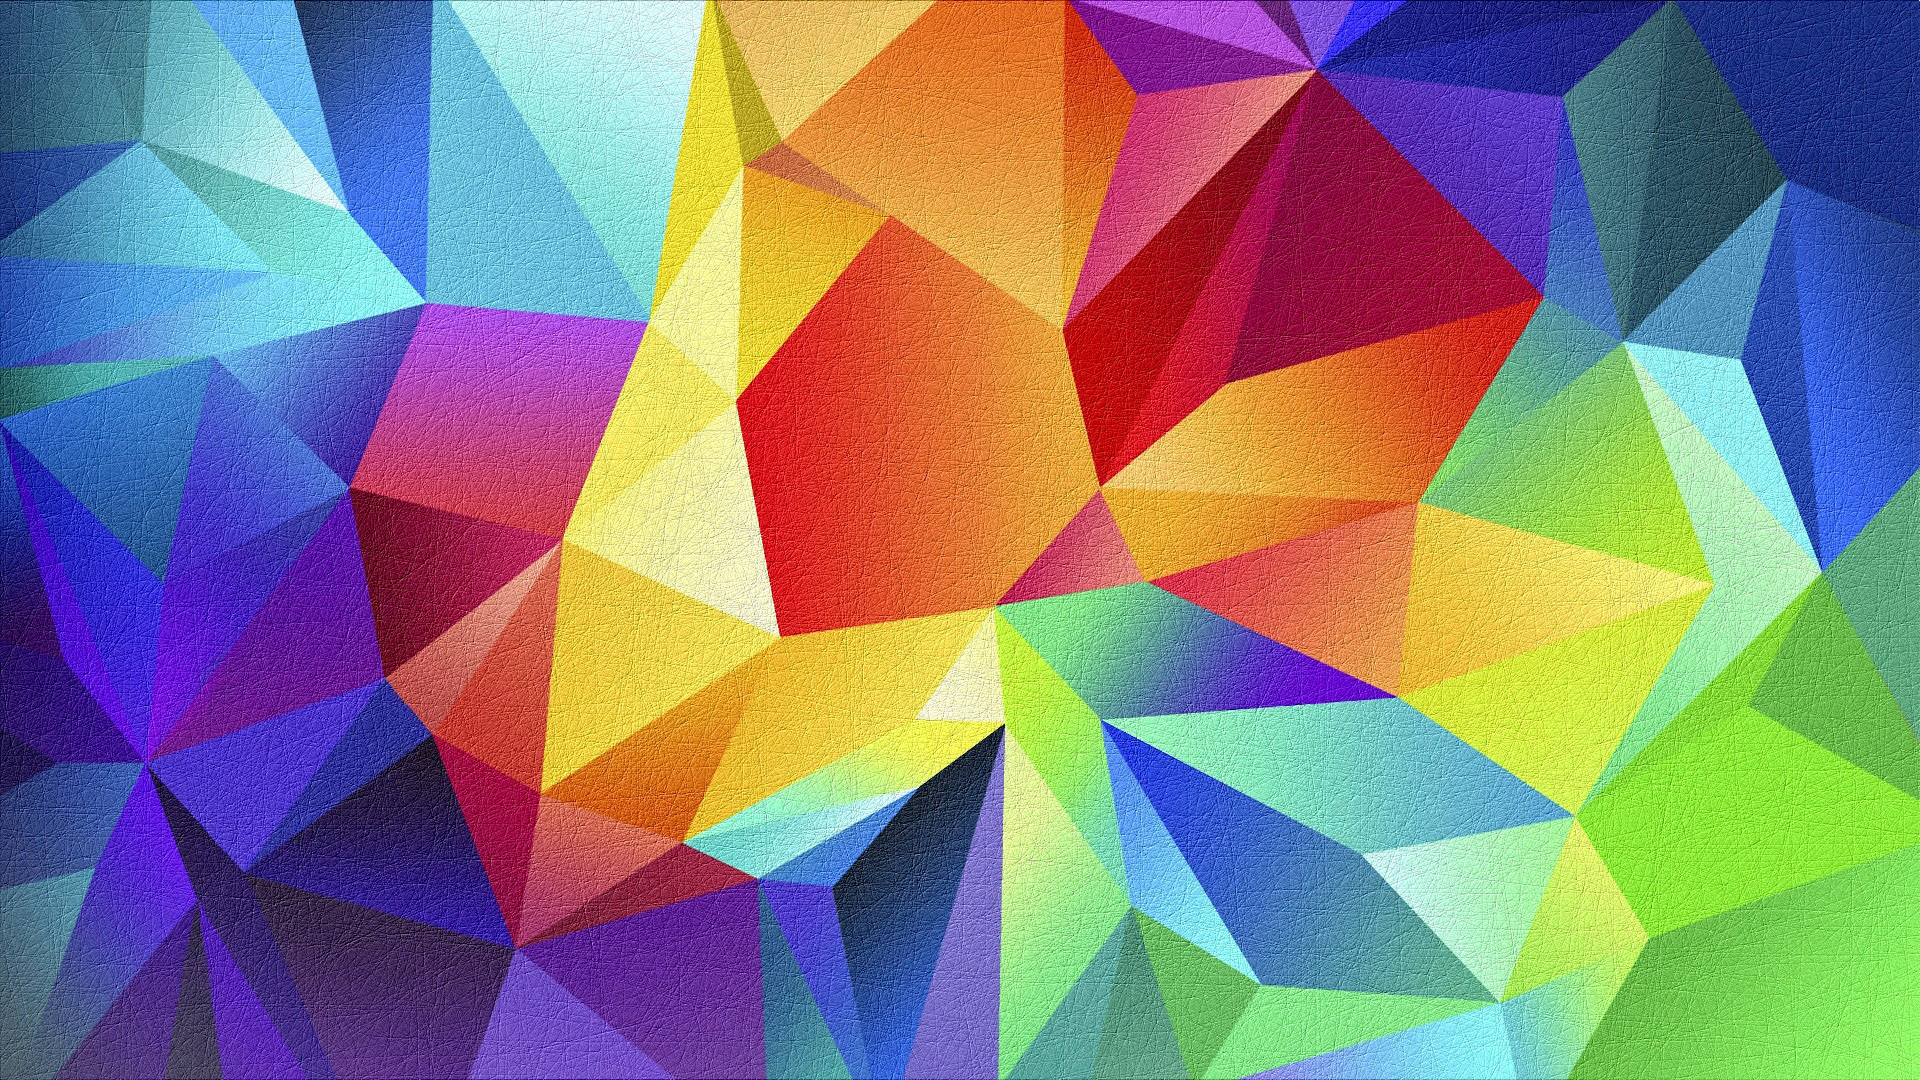 Samsung Abstract Wallpaper